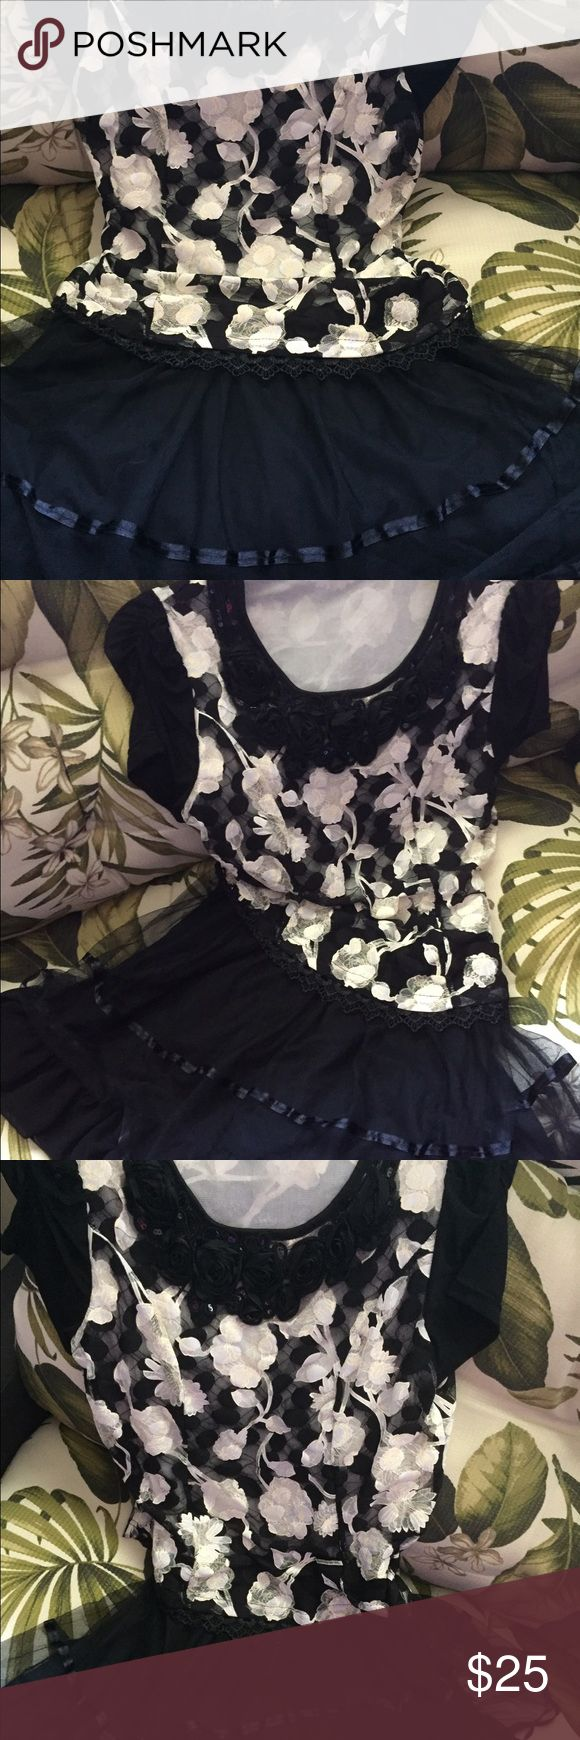 Flowery Black and White Short Mini Party Dress Flowery Black and White Short Mini Party Dress, lace and flowers, evening party wear or special occasion. Dresses